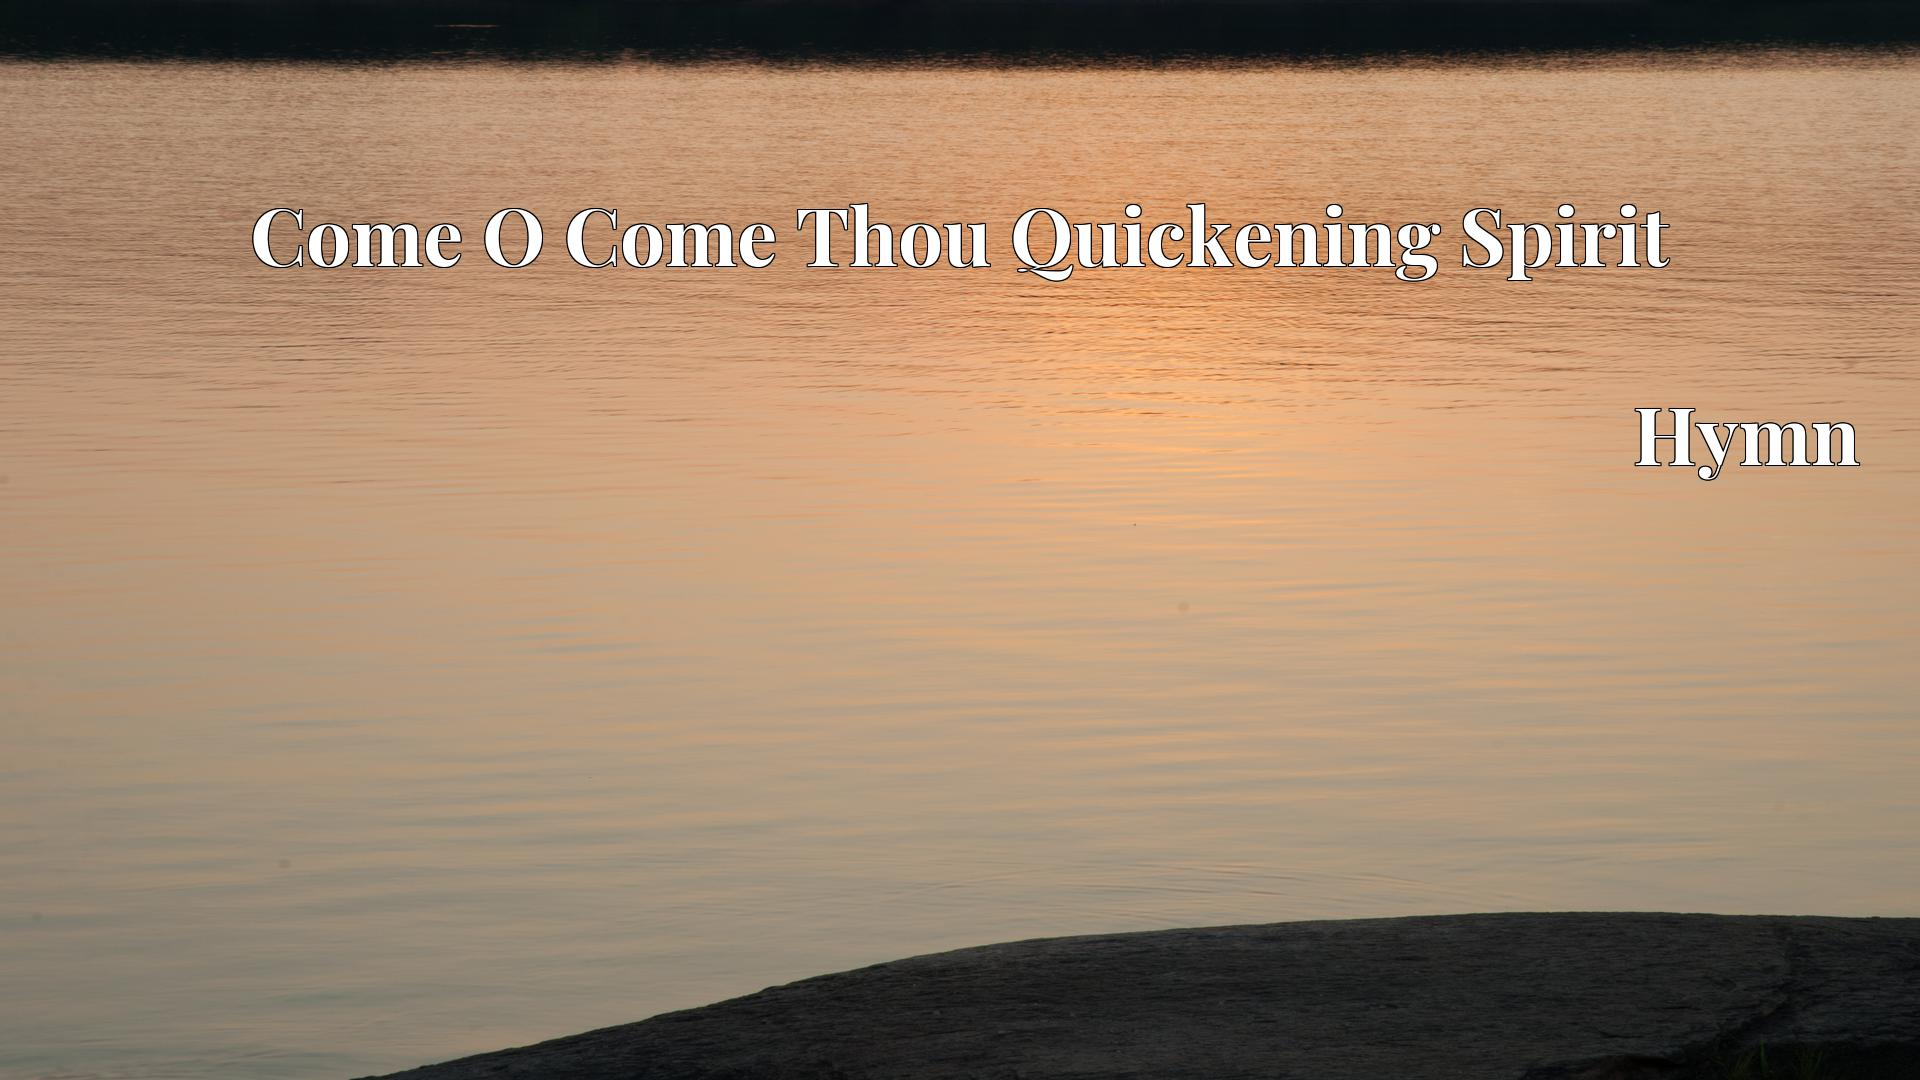 Come O Come Thou Quickening Spirit - Hymn